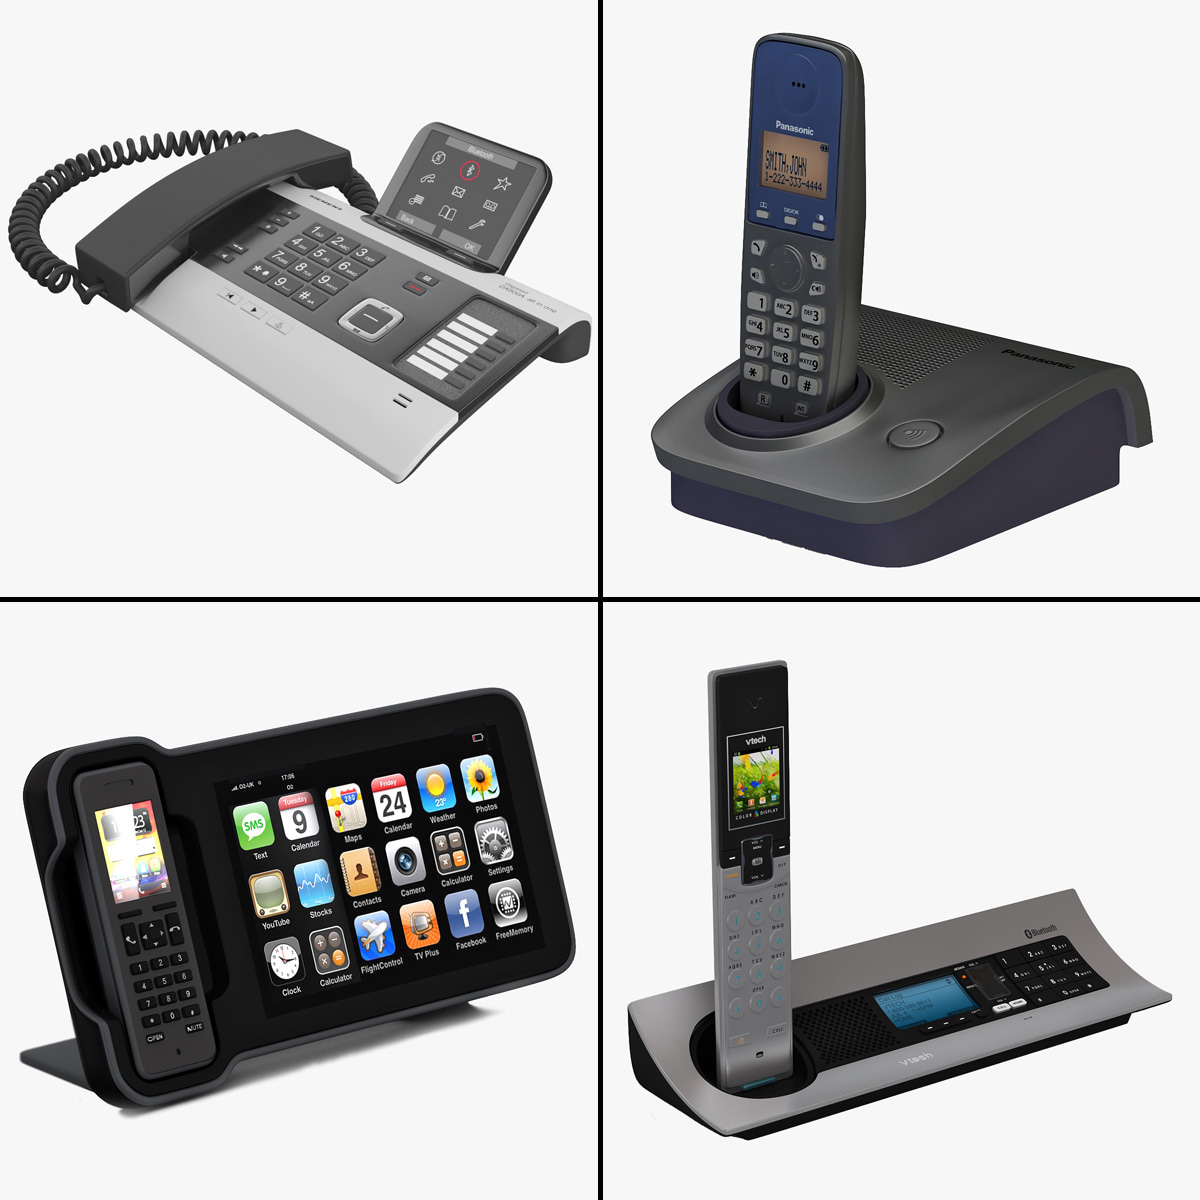 Home_Phones_Collection_000.jpg